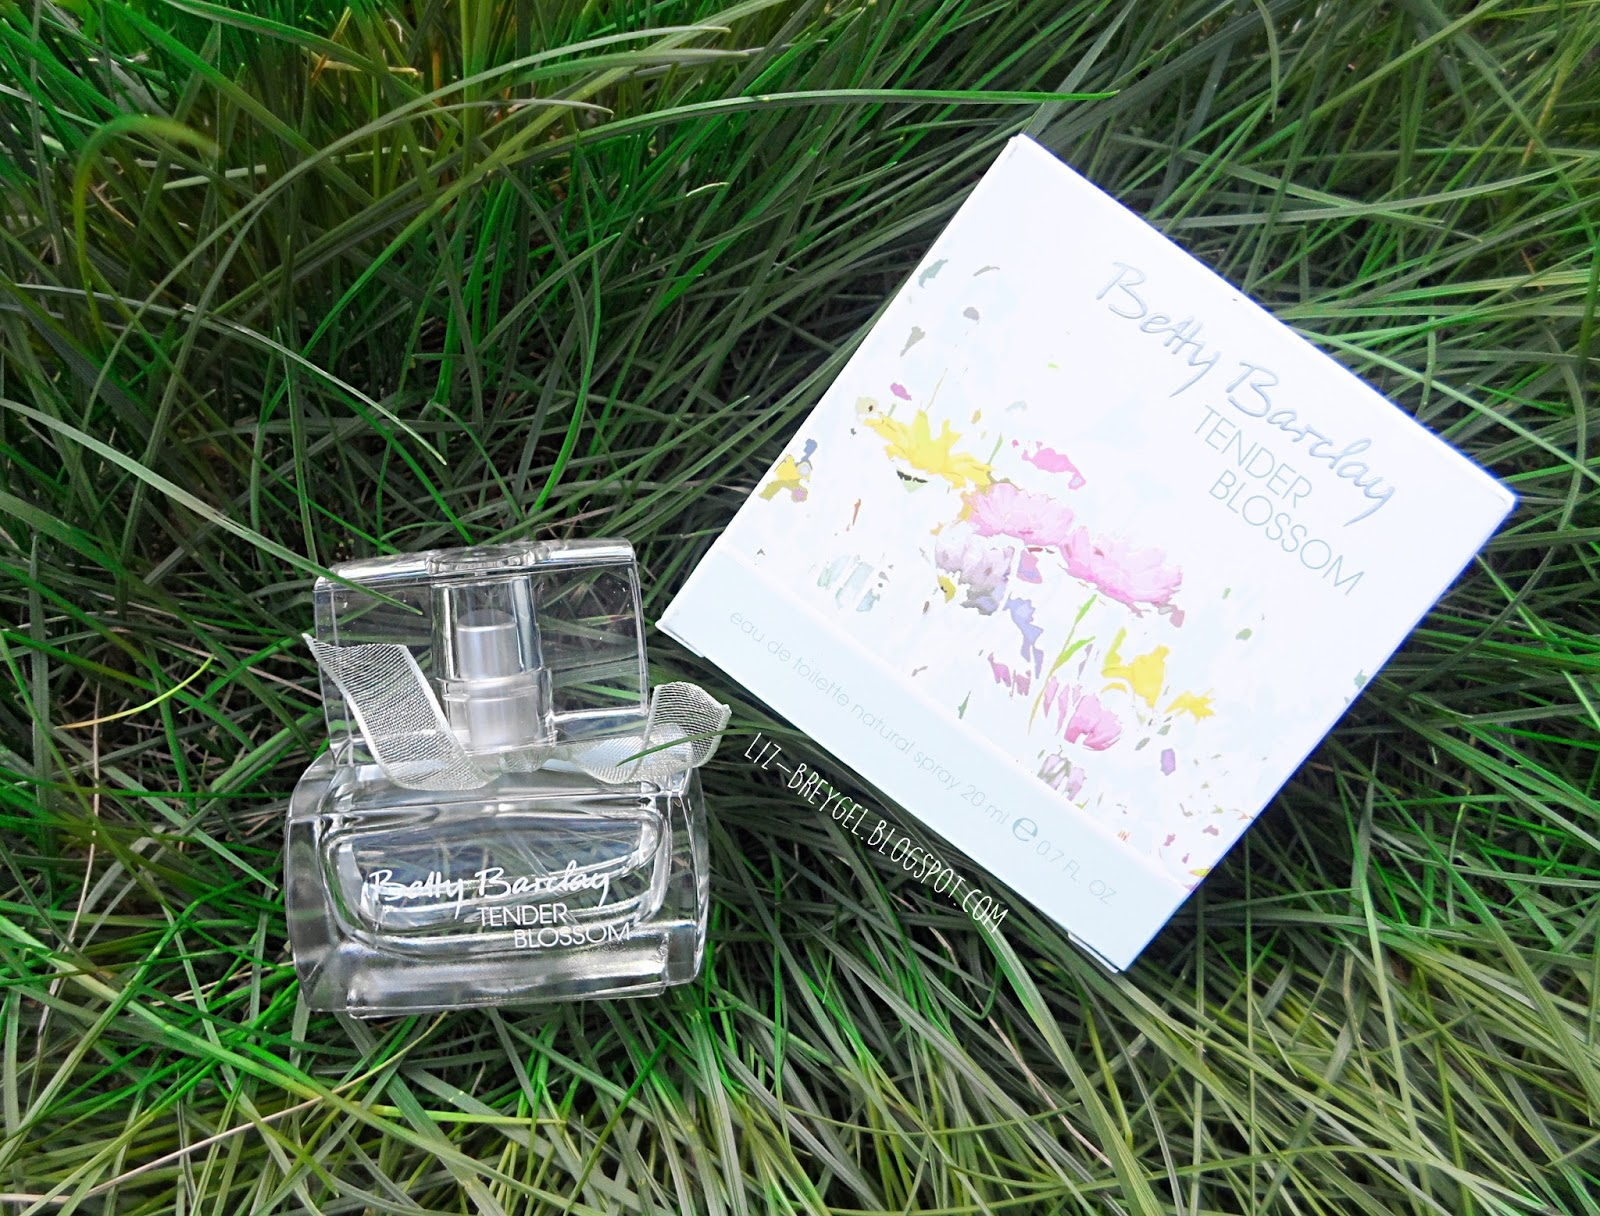 liz breygel blogger perfume fragrance review betty barclay pictures buy online tender blossom description spring sweet fresh aroma